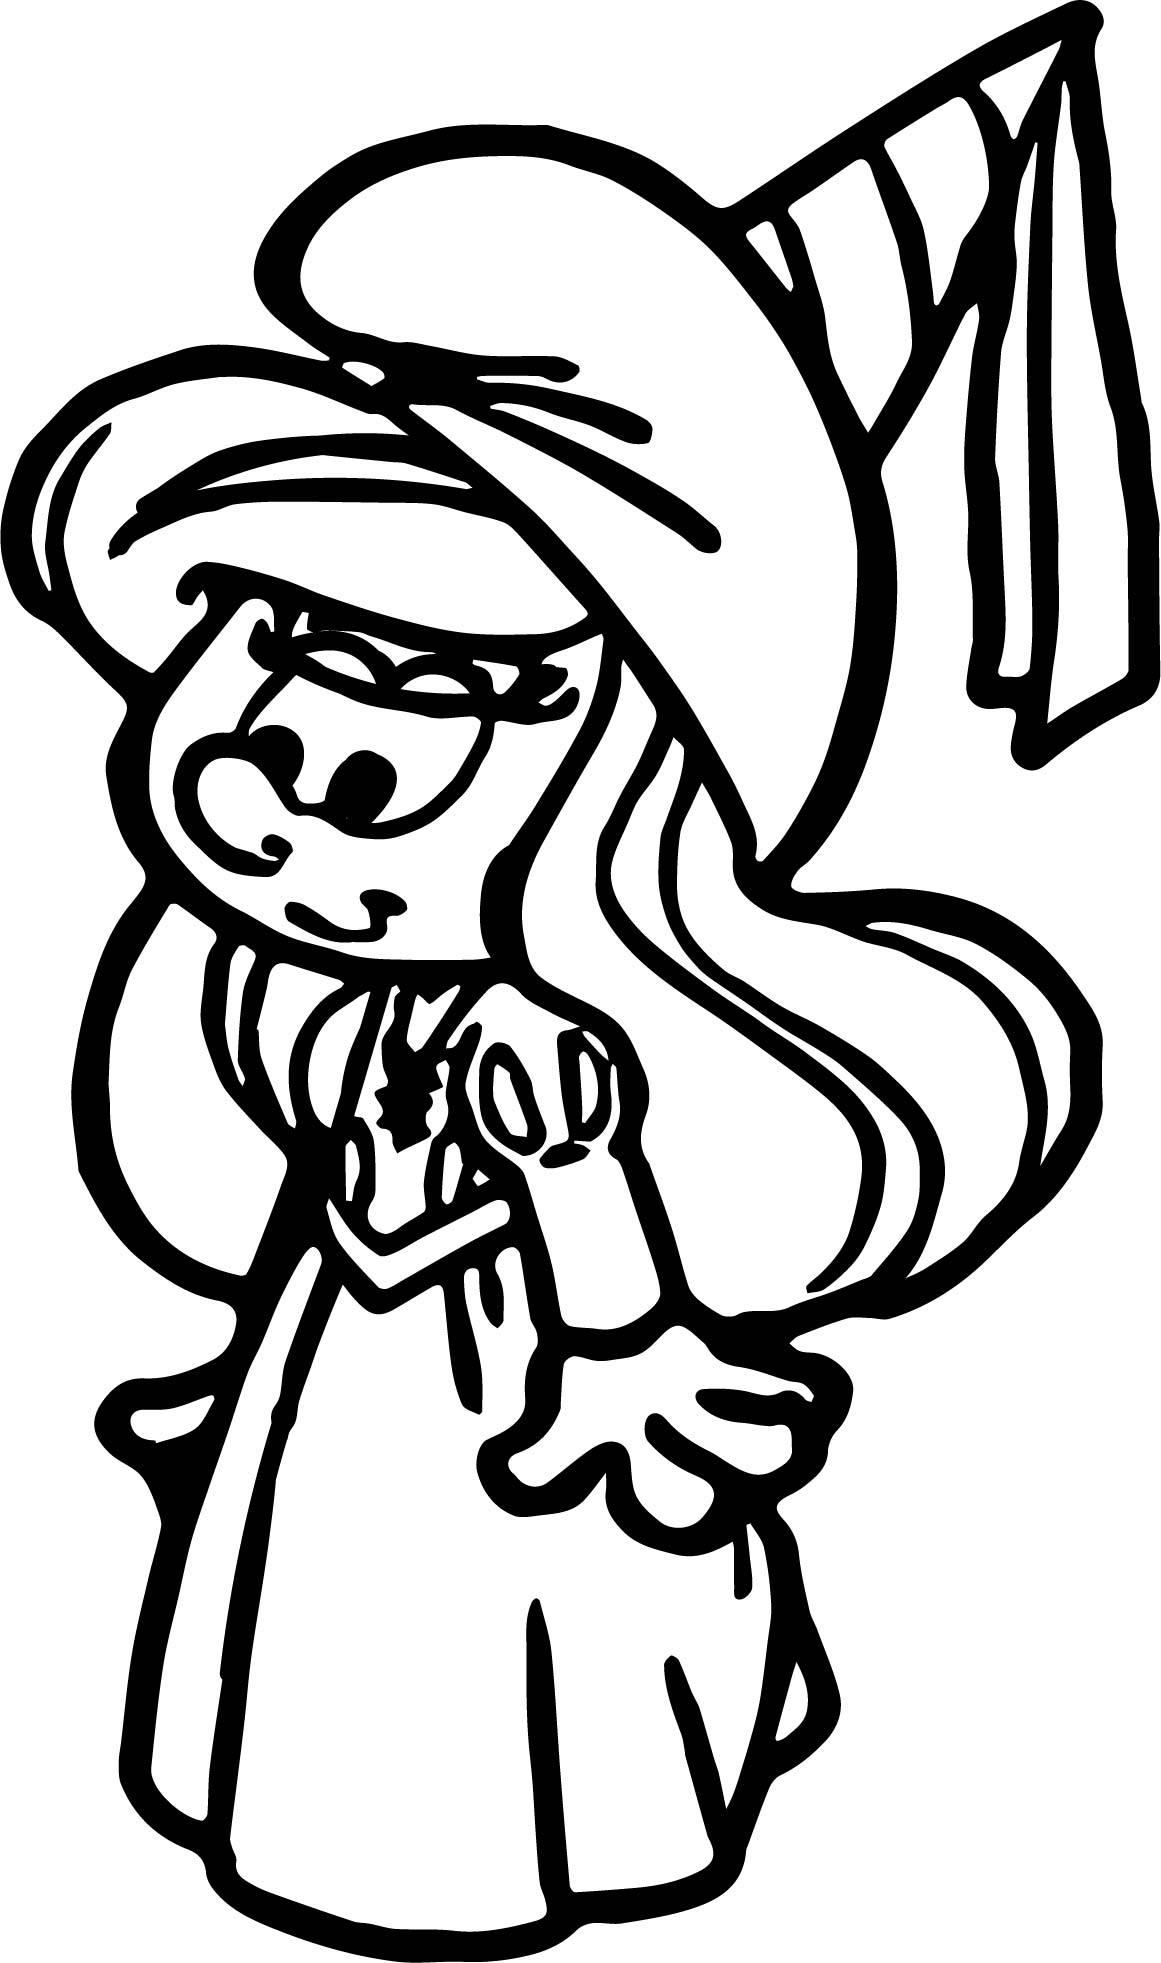 picture of smurfette smurfette drawing at getdrawings free download picture of smurfette